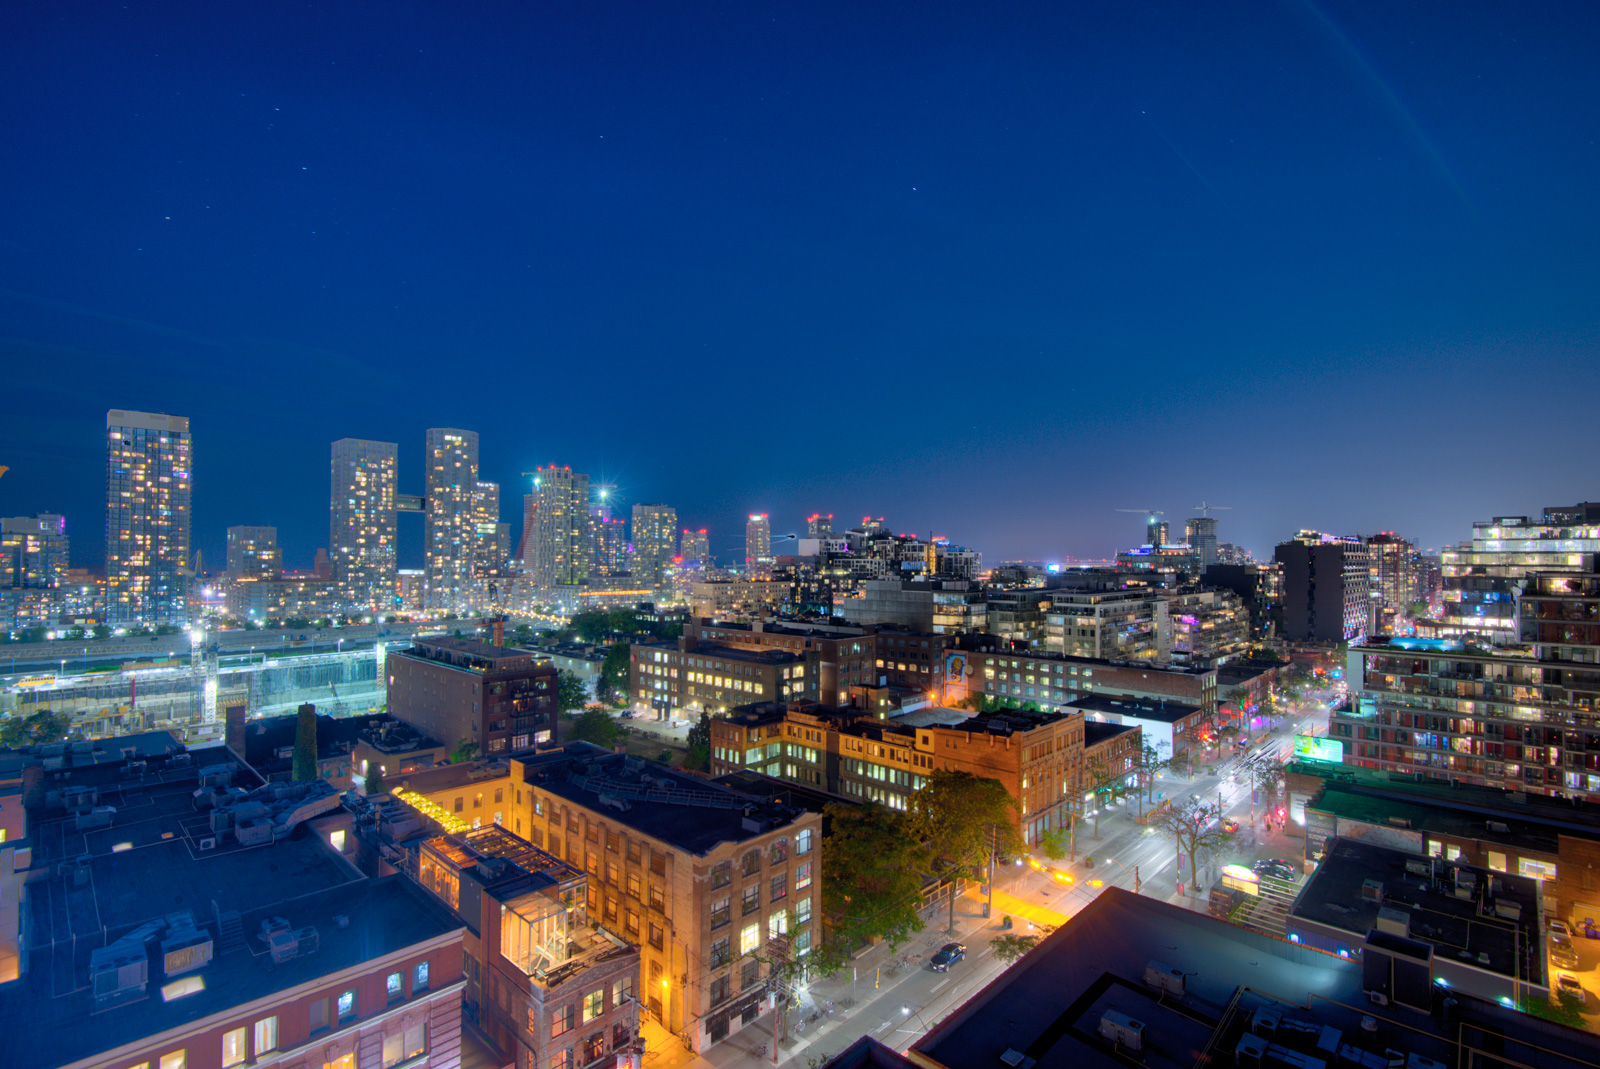 Night view of King St W from roof of Victory Lofts Penthouse Suite in 478 King St W Toronto.